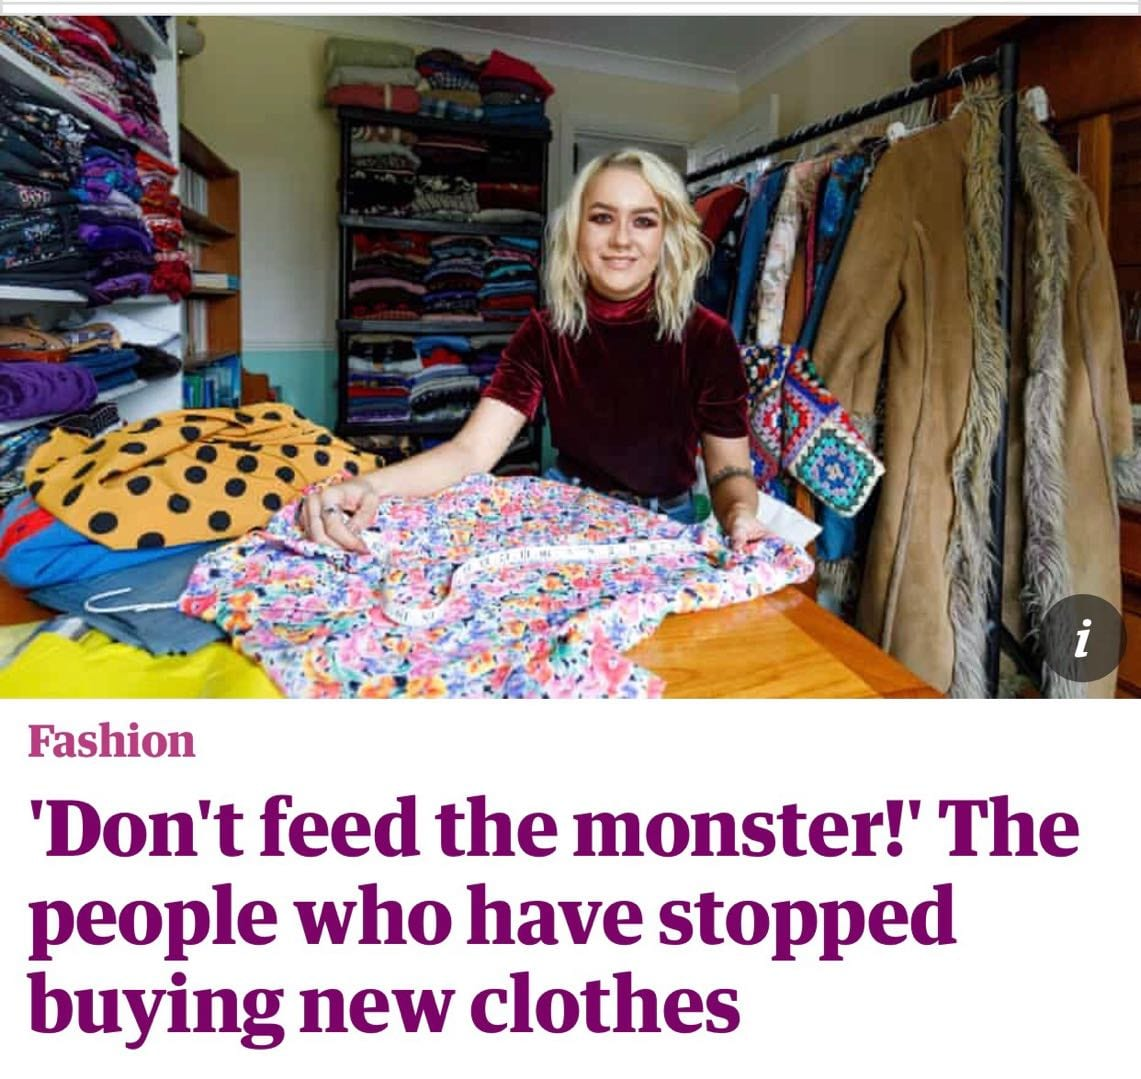 Don't feed the monster! The people who have stopped buying new clothes #sustainable system